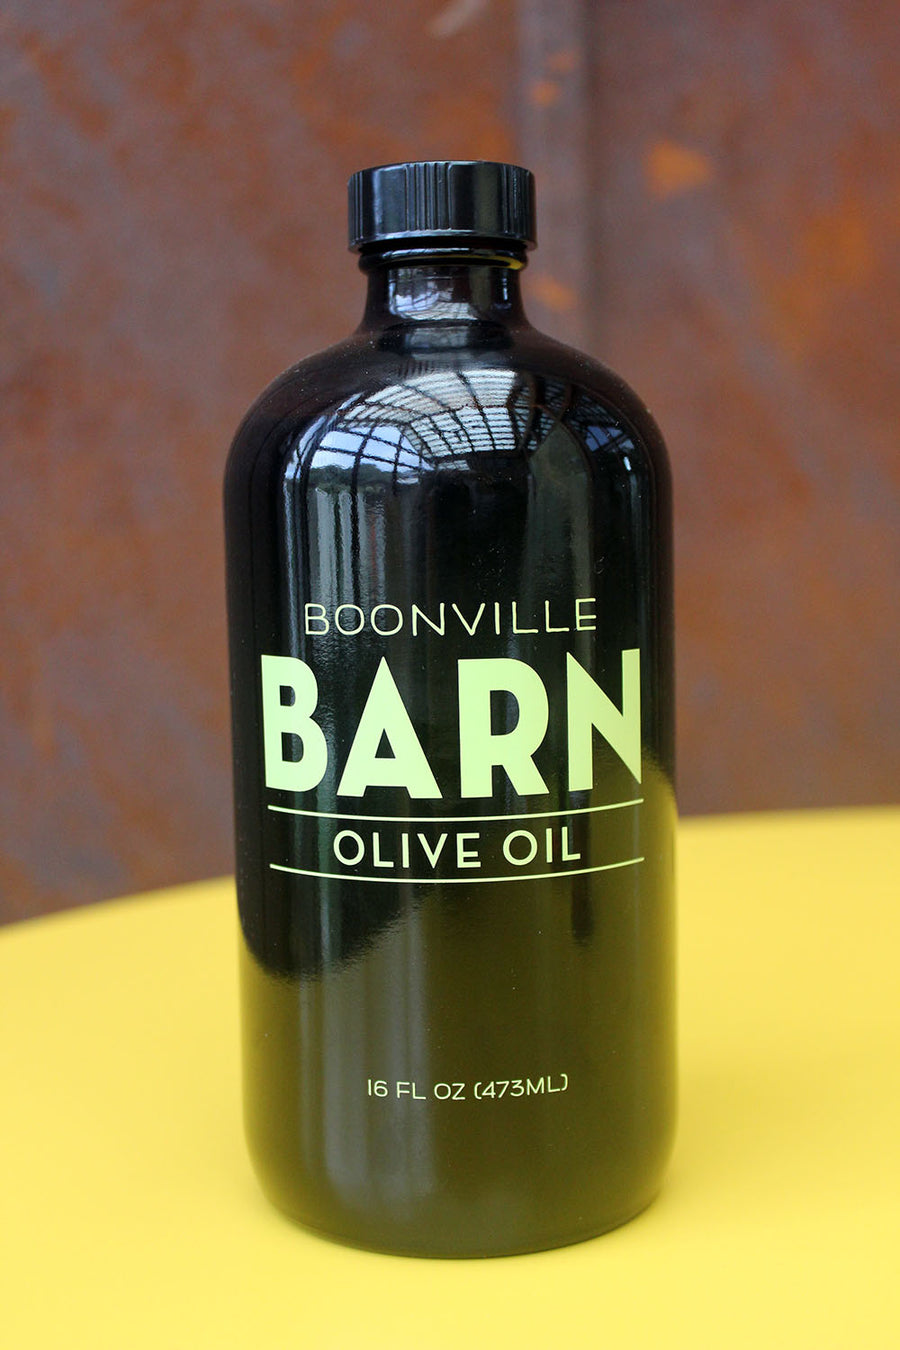 Boonville Barn Collective Olive Oil